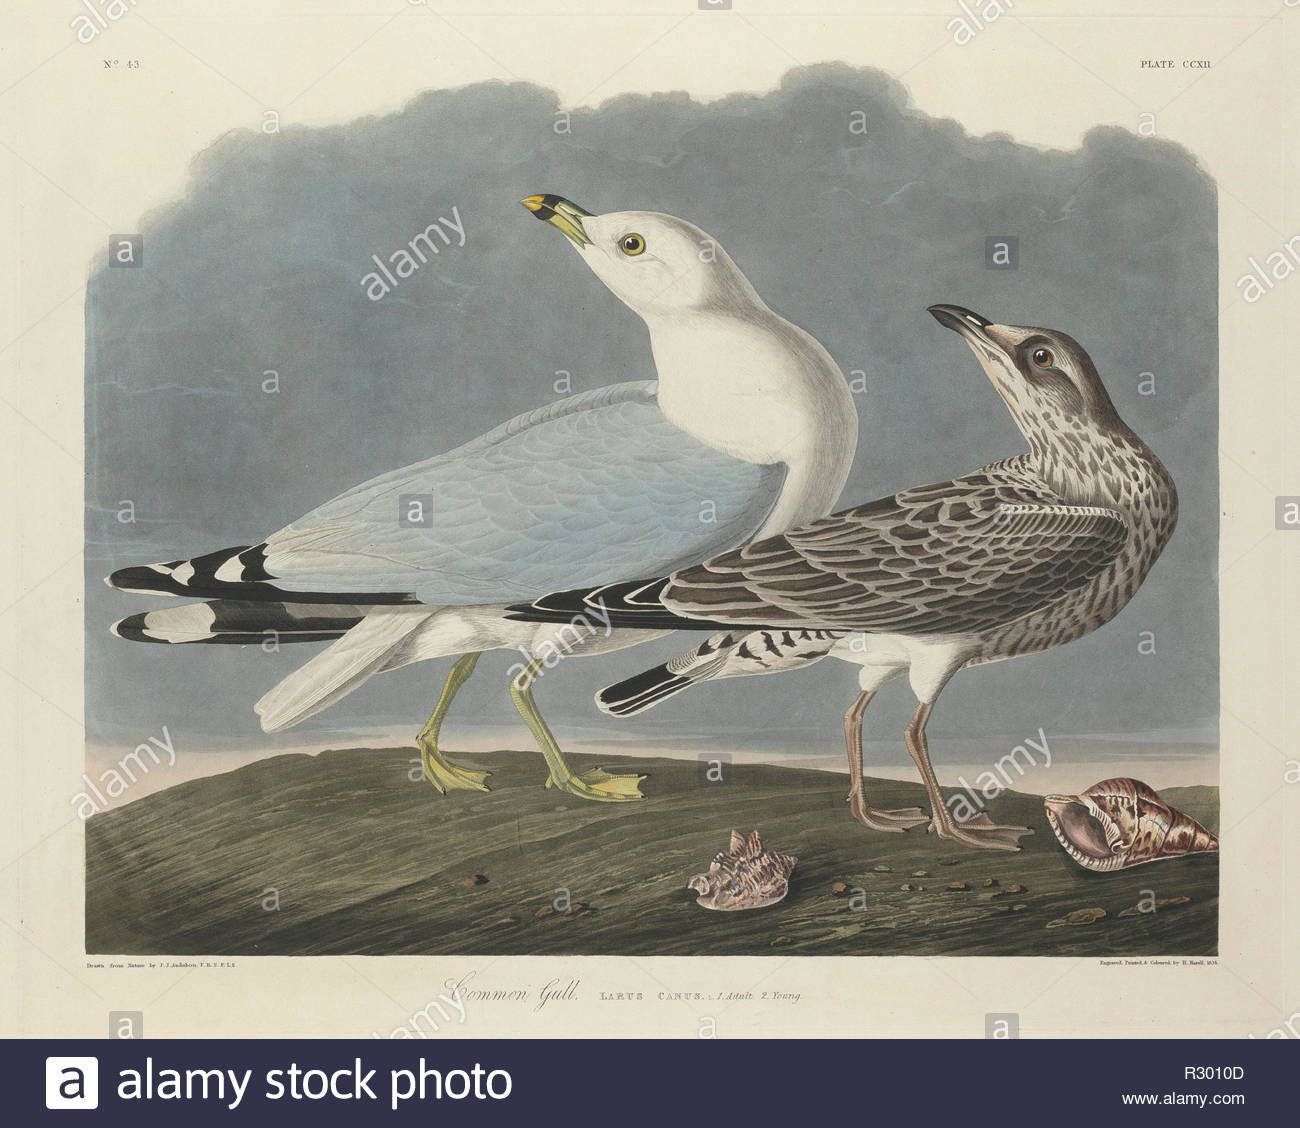 Common Gull. Dated: 1834. Medium: hand-colored etching and aquatint on Whatman paper. Museum: National Gallery of Art, Washington DC. Author: Robert Havell after John James Audubon. - Stock Image